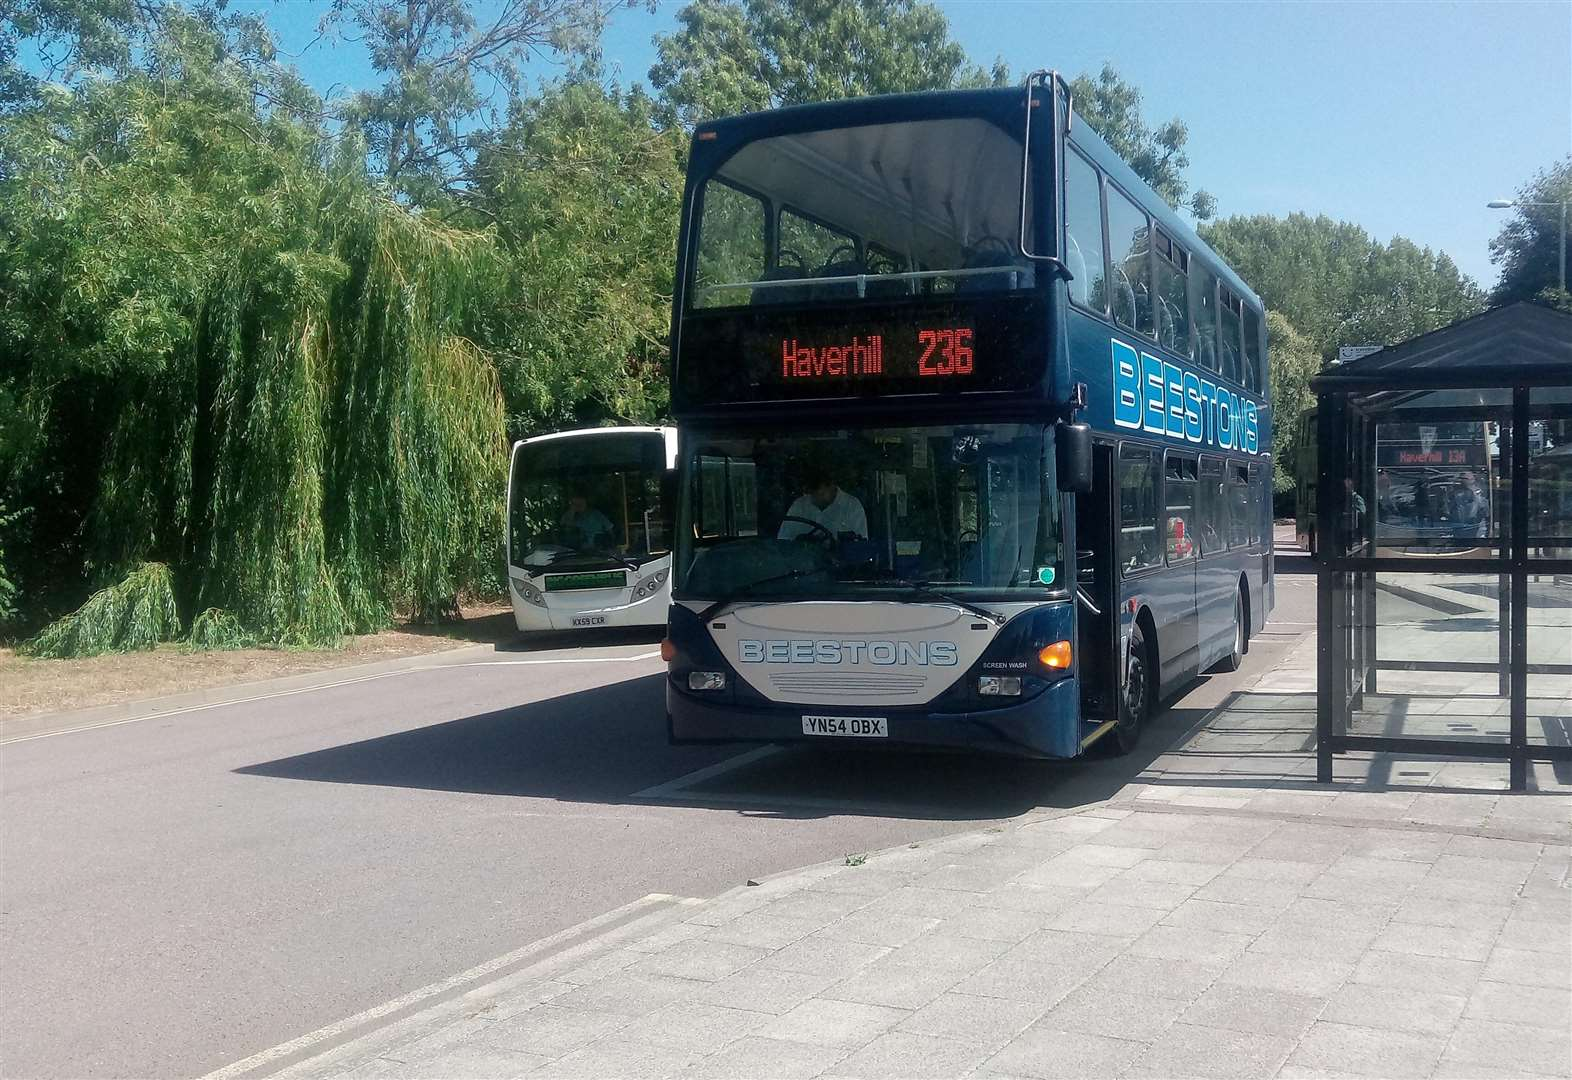 Under threat Haverhill to Clare bus service is saved